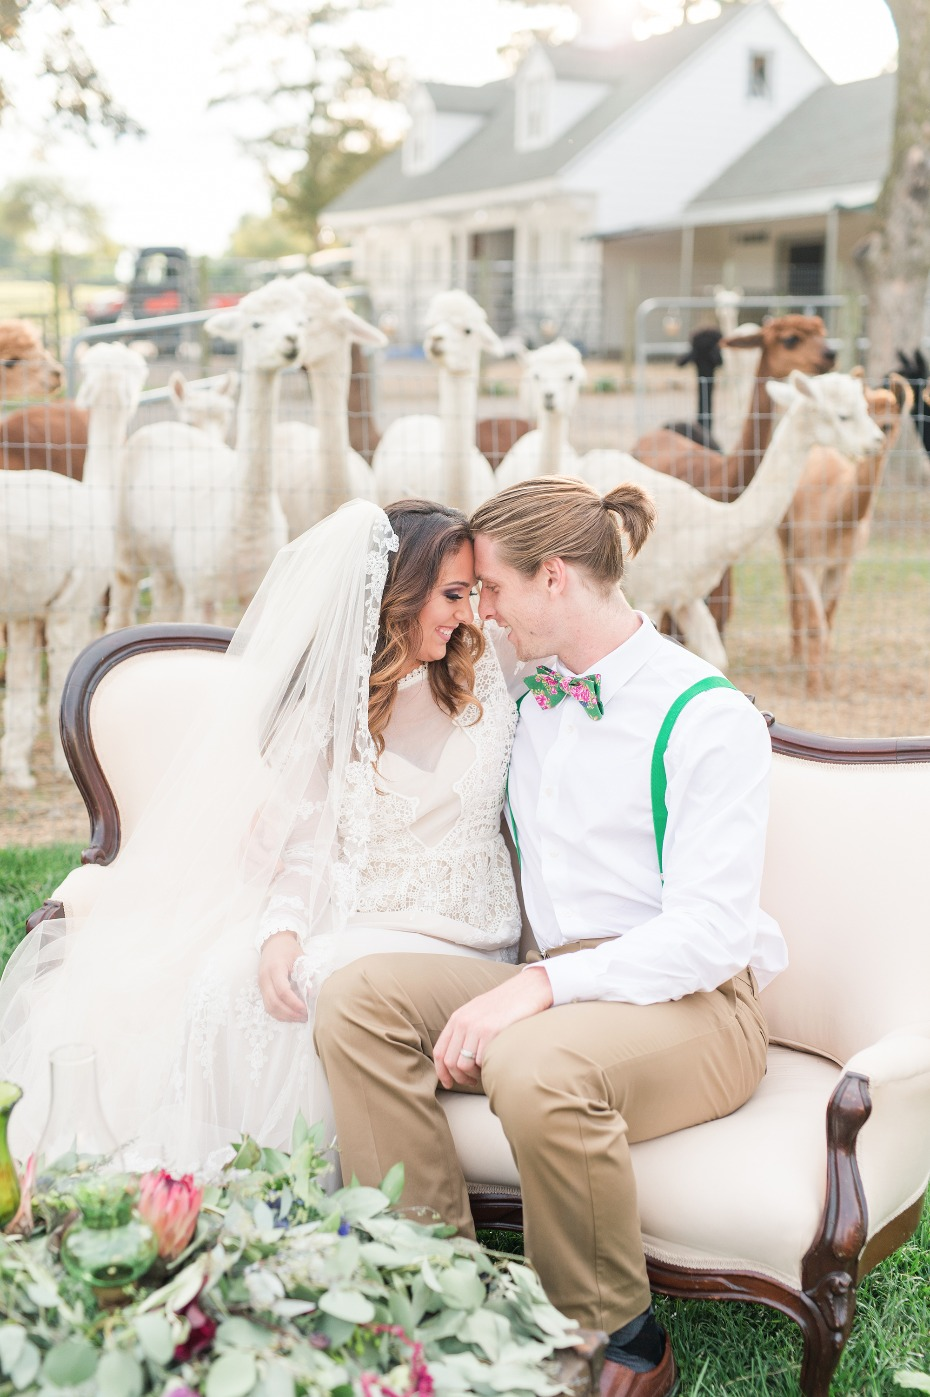 Get married on an Alpaca Farm